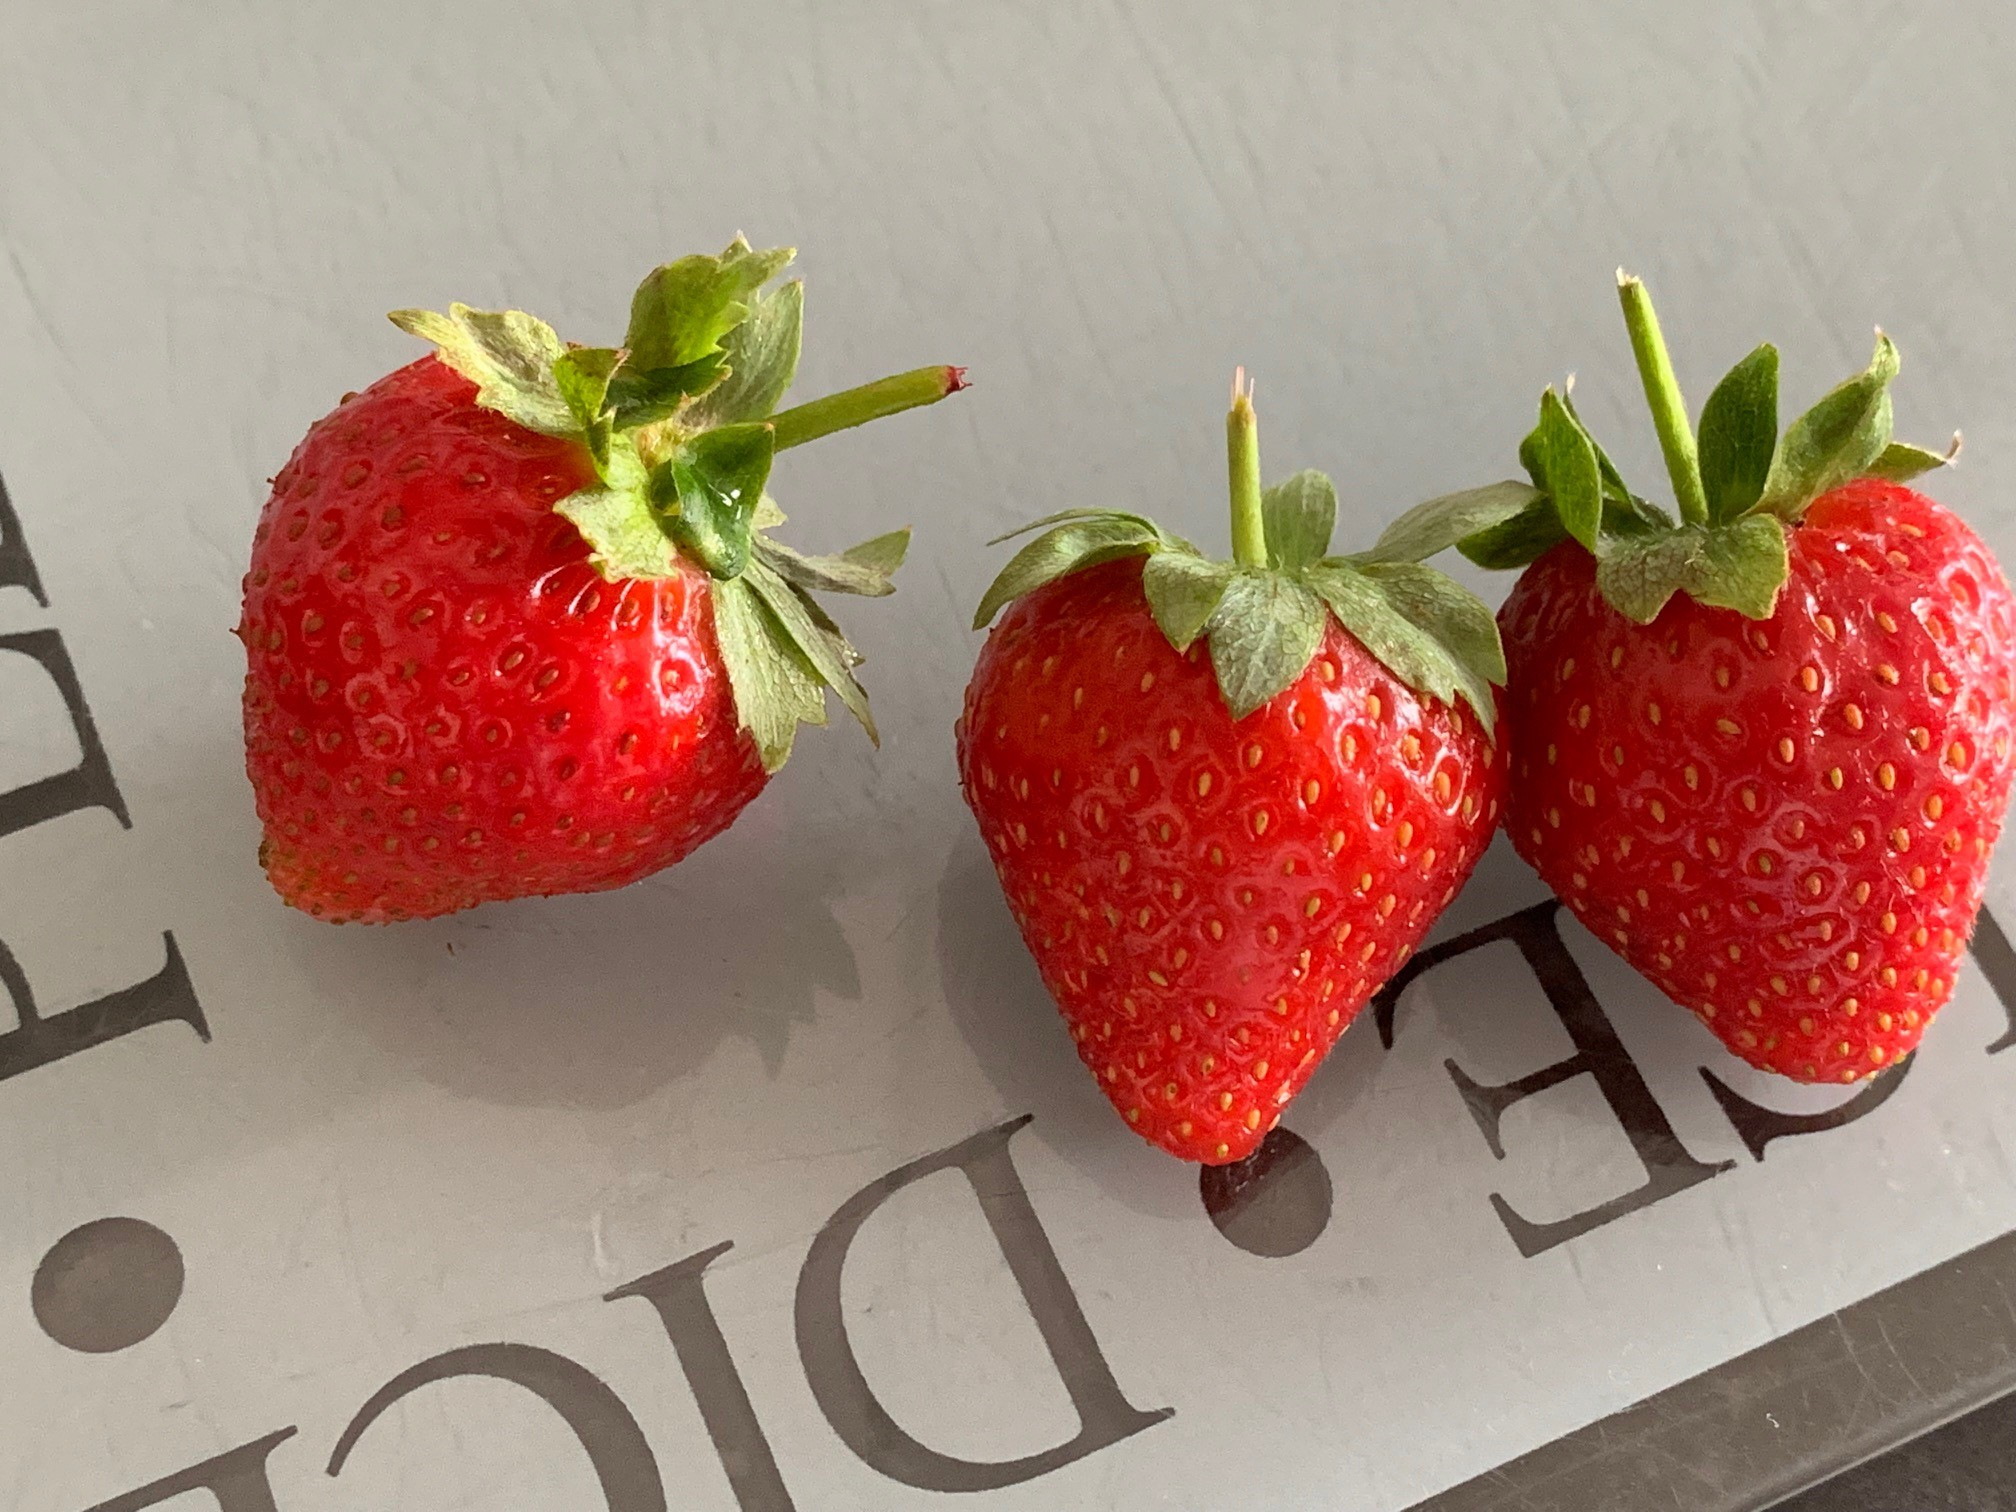 Perfect stalk length to keep strawberries fresher for longer with M&S